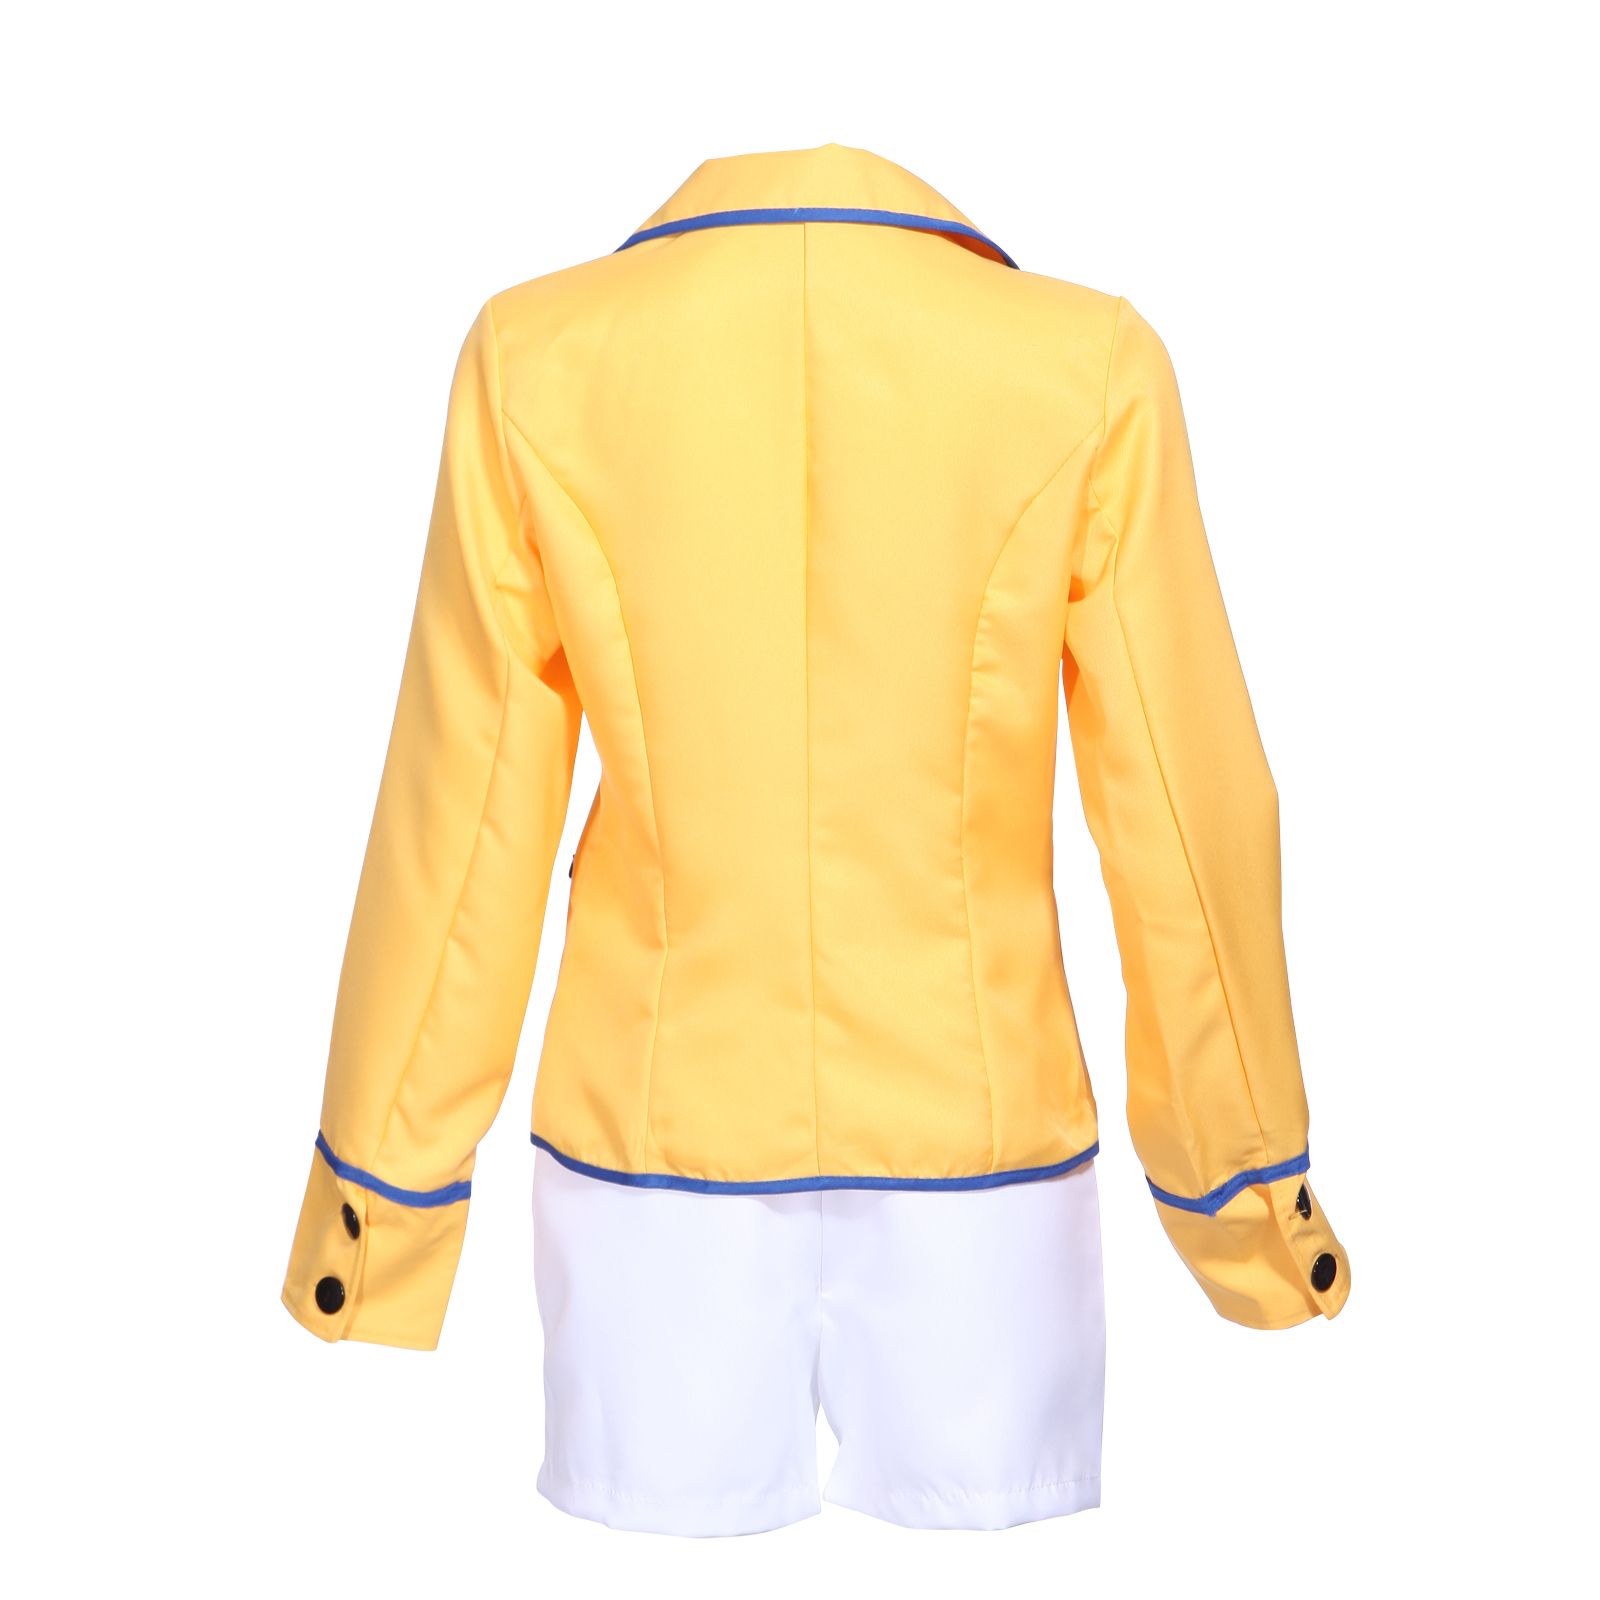 80s Sexy Ladies Hi de Hi Costume TV Yellow Coat Shorts Uniform ...